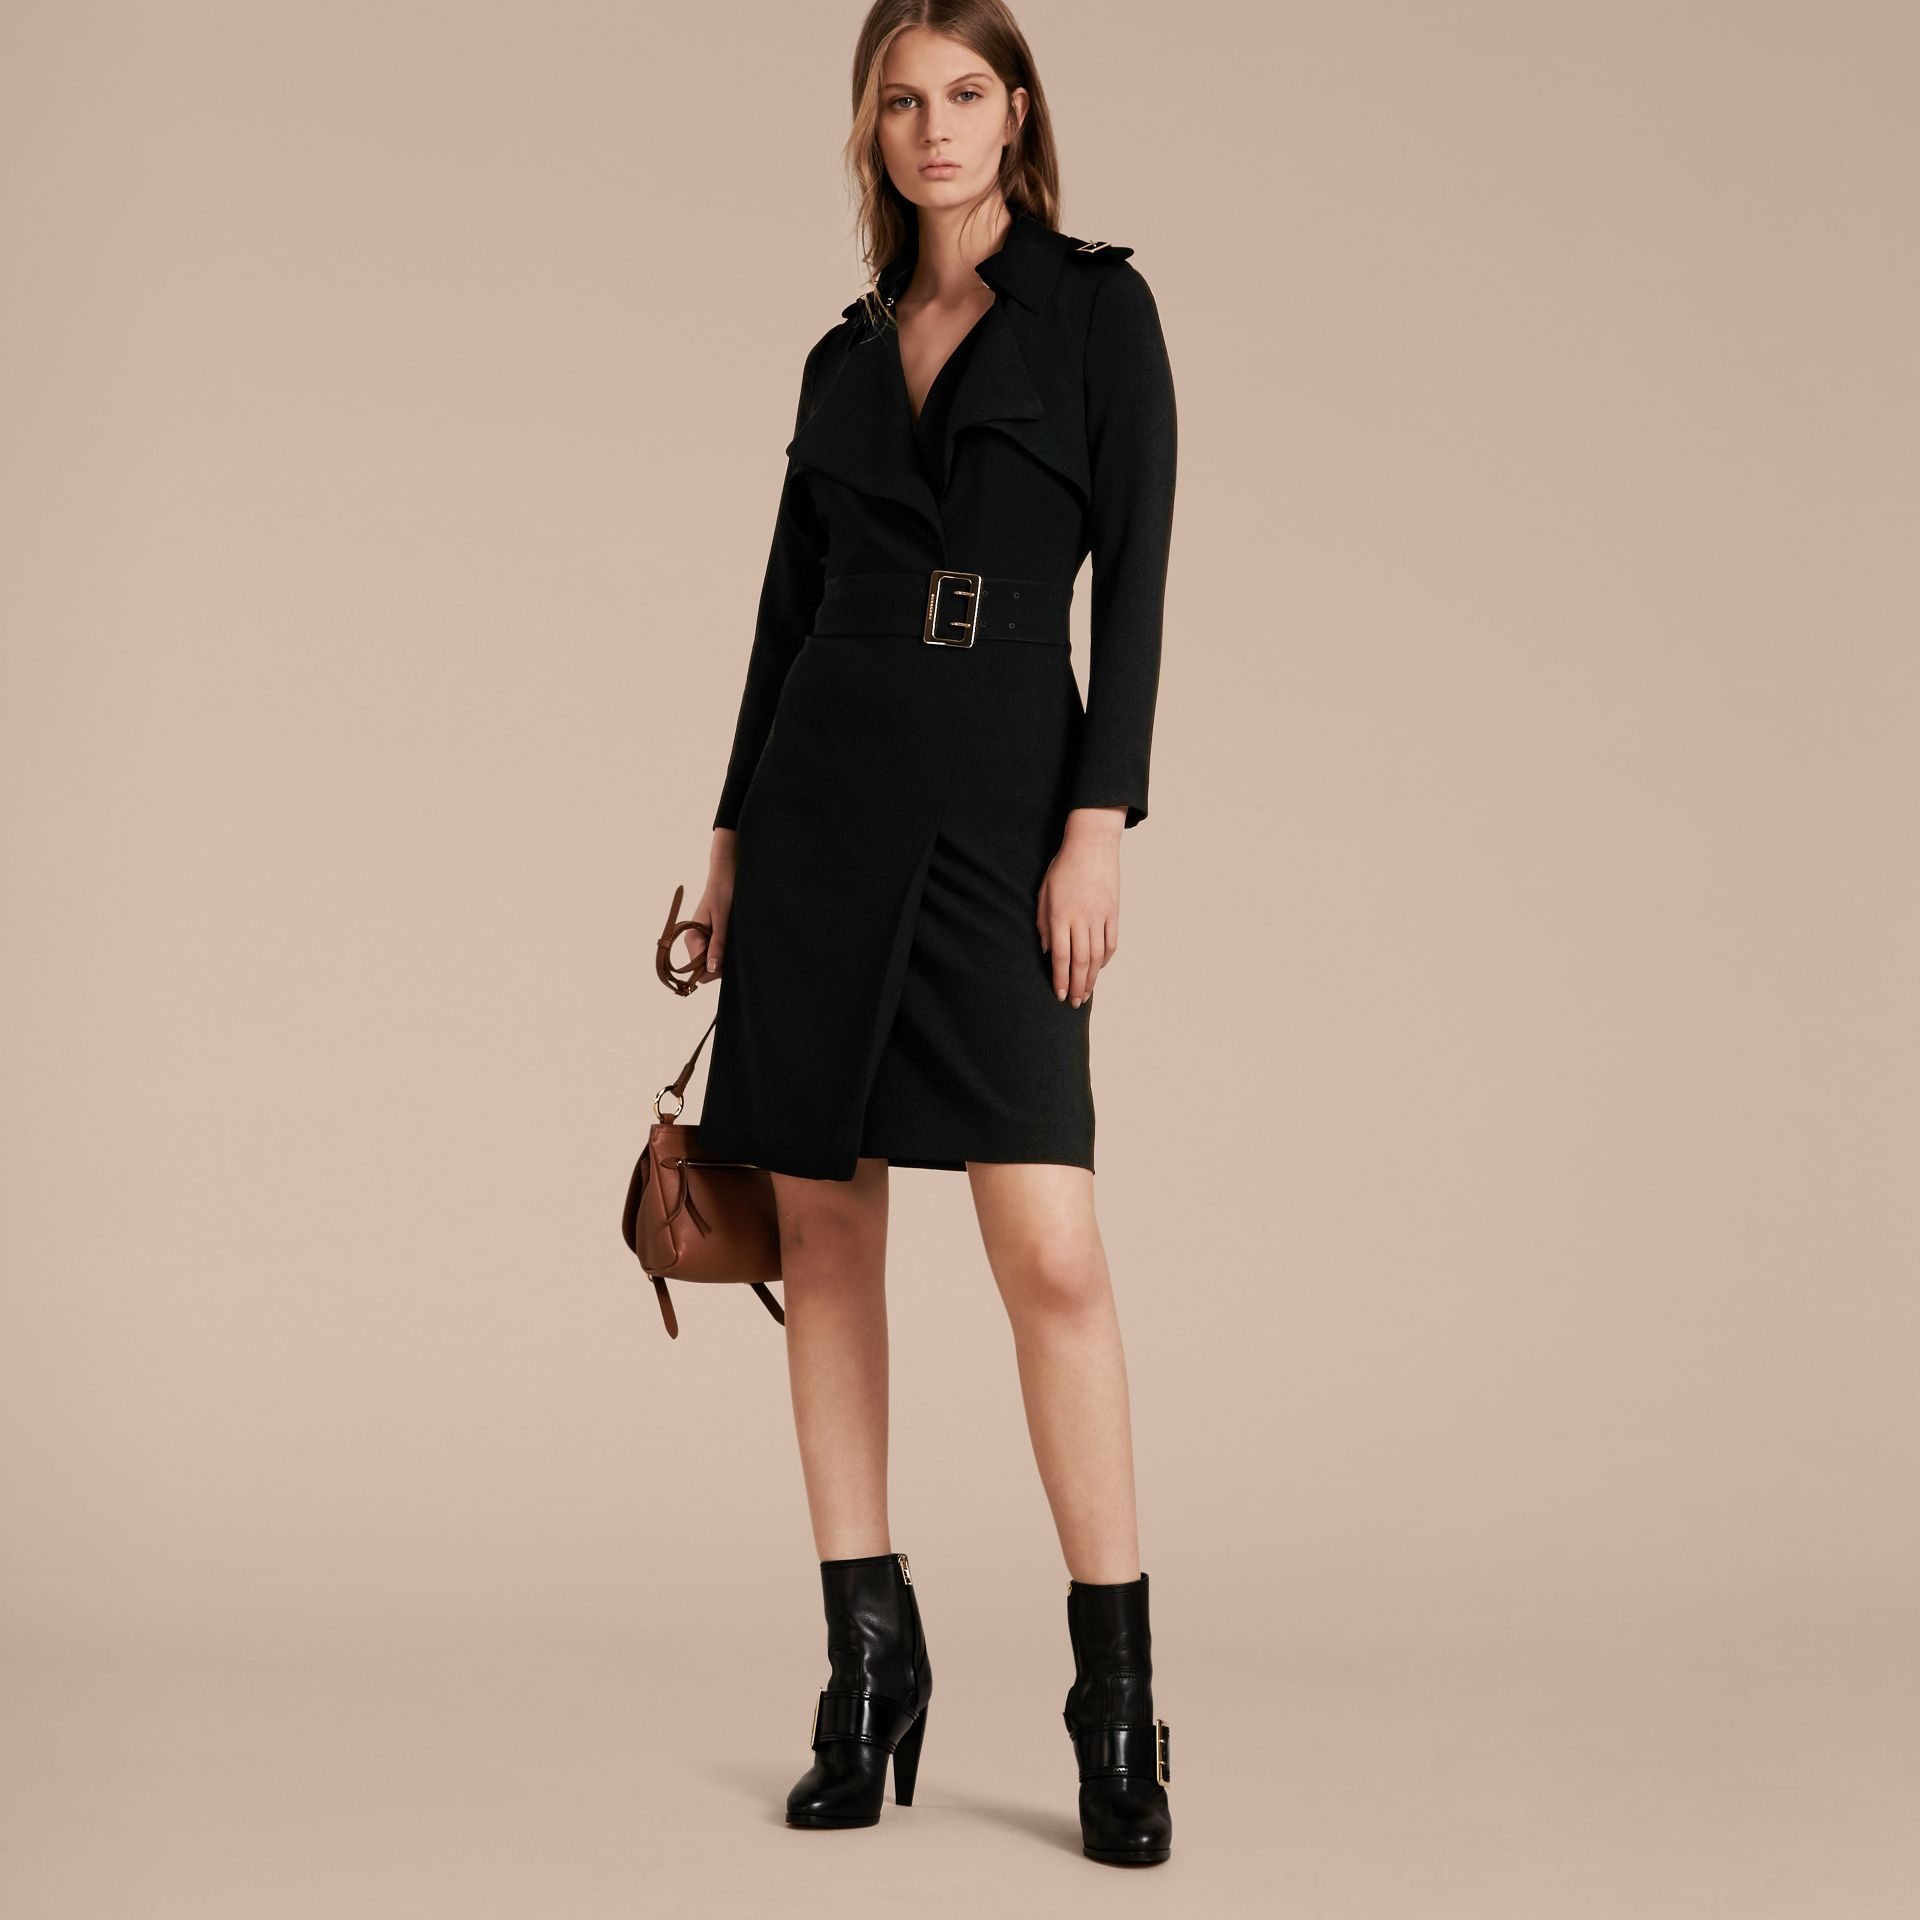 Black Buckle Detail Satin-back Crepe Trench Dress Black - gallery image 5